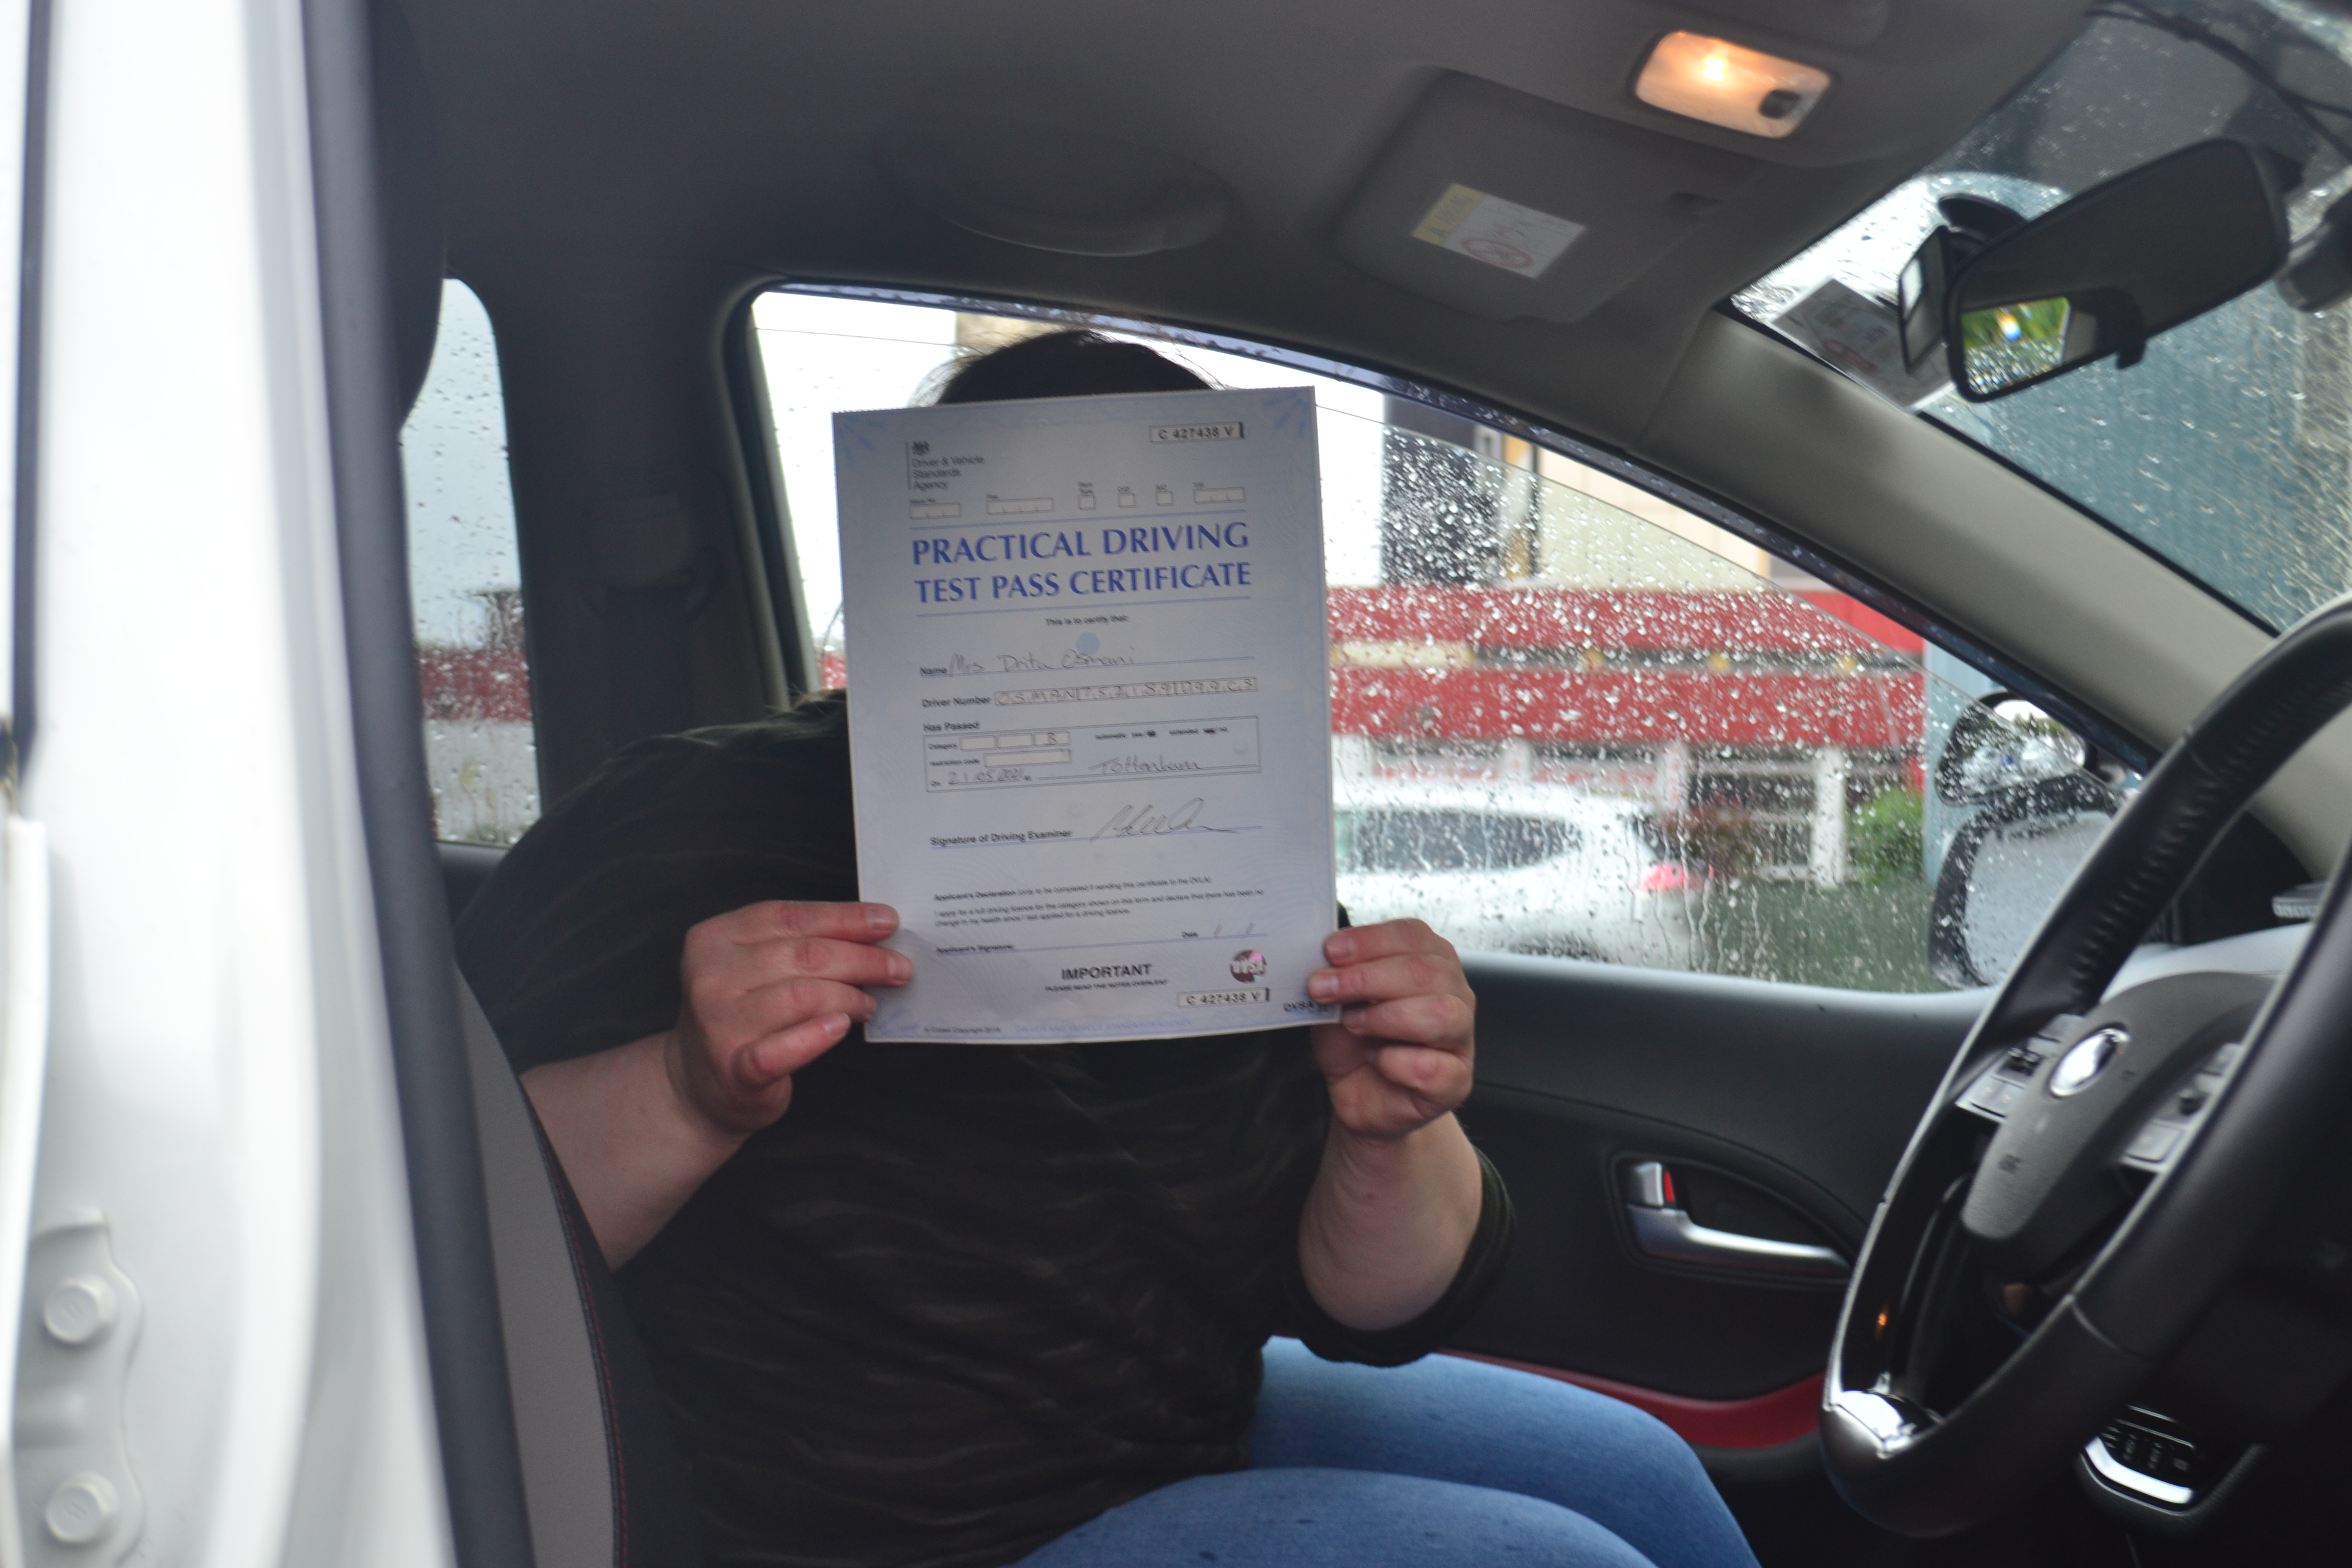 Automatic Driving Lessons Southgate. Drita passed.